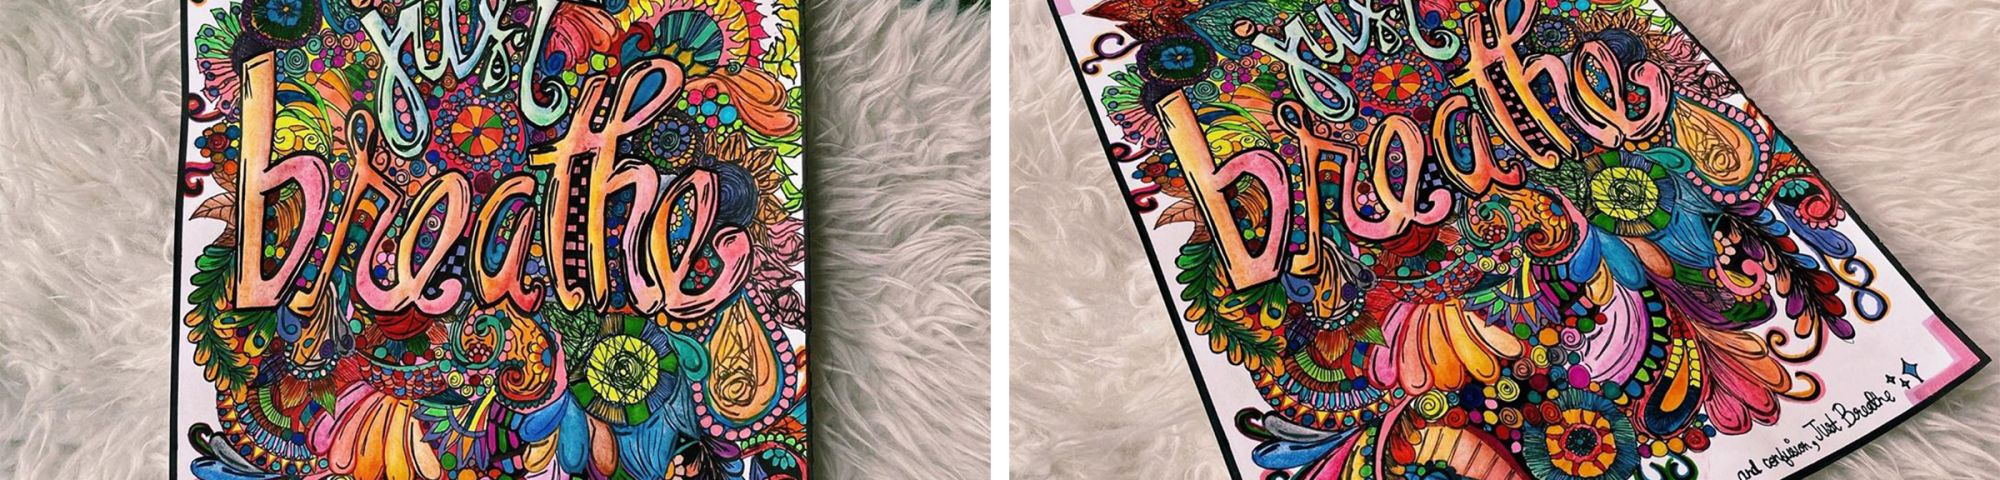 colourful illustrations of the words 'just breathe' on a furry carpet